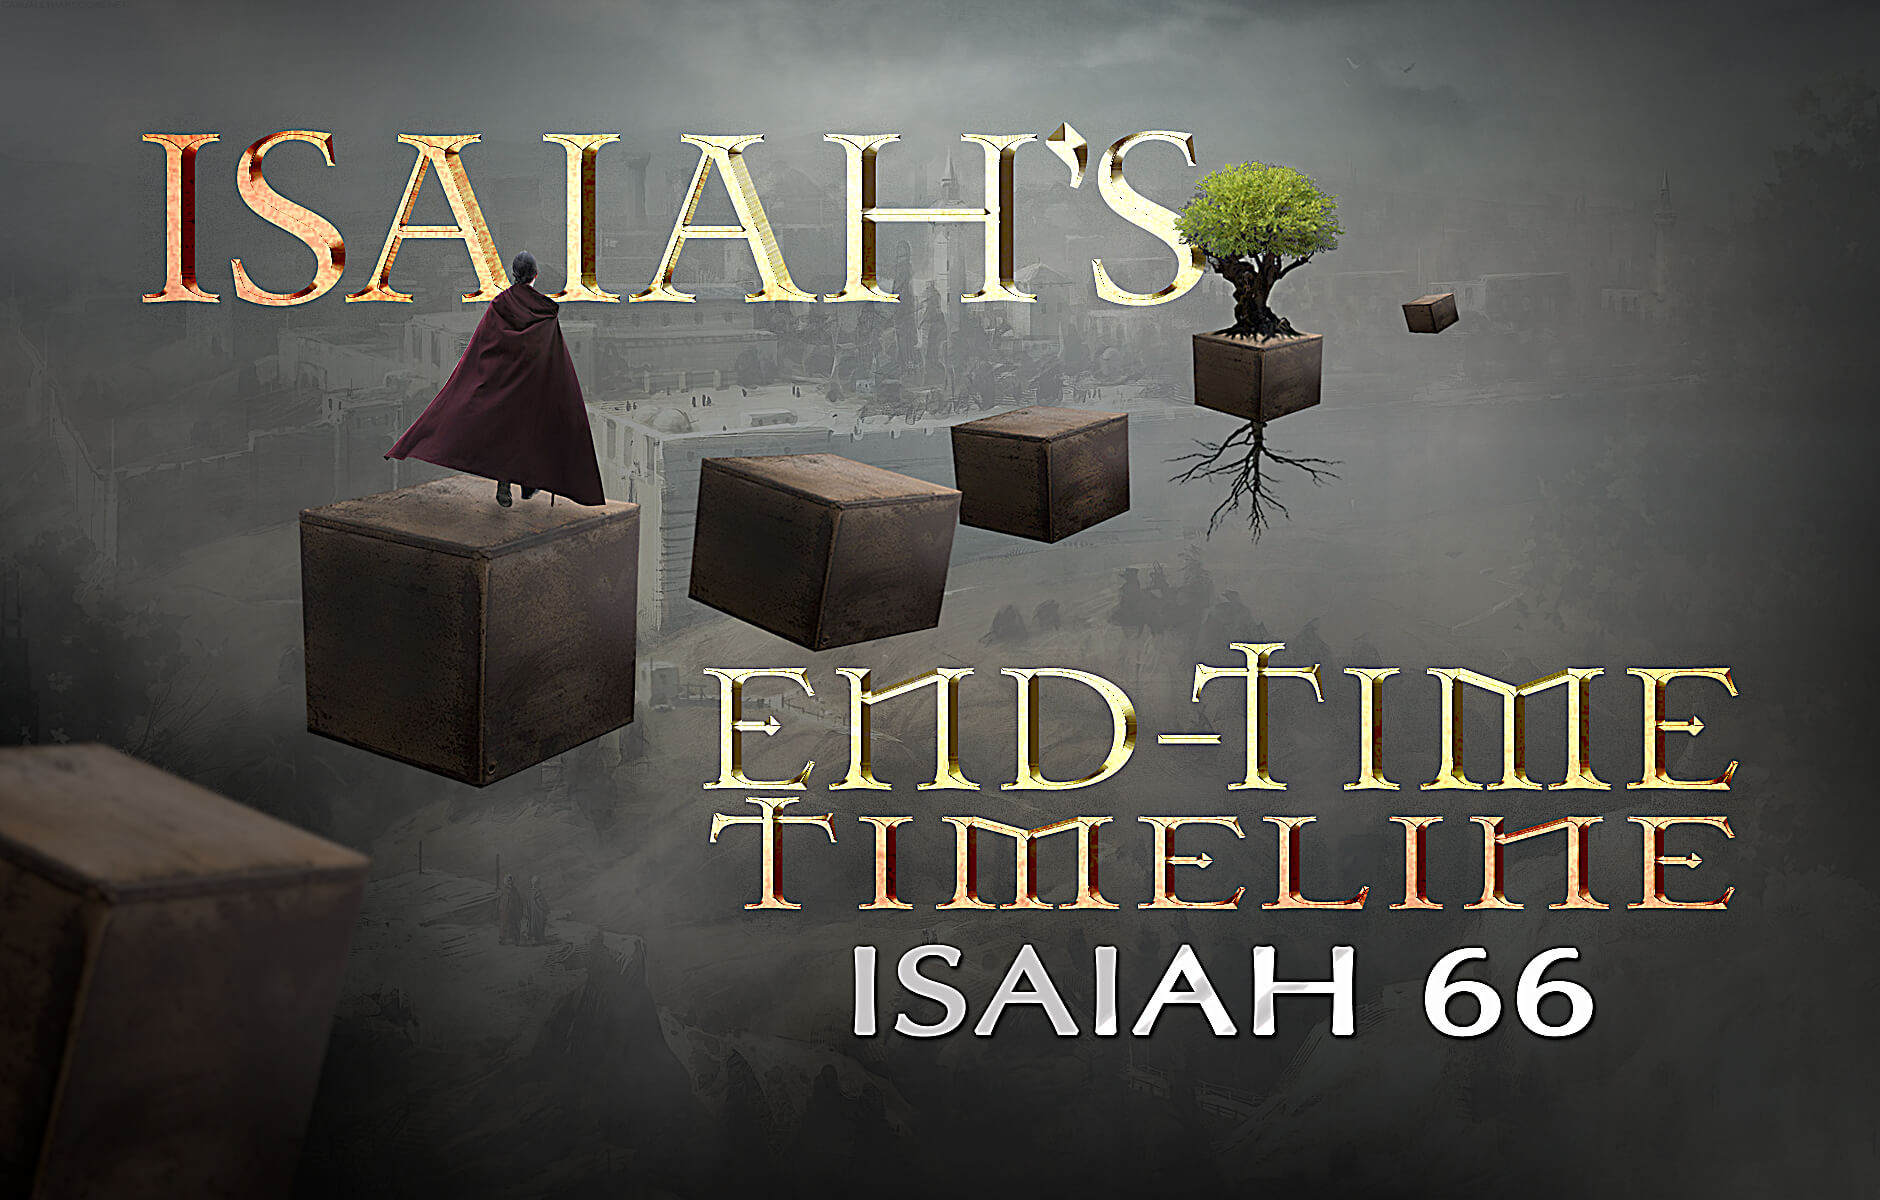 Isaiah's End-time Timeline Chapter 66